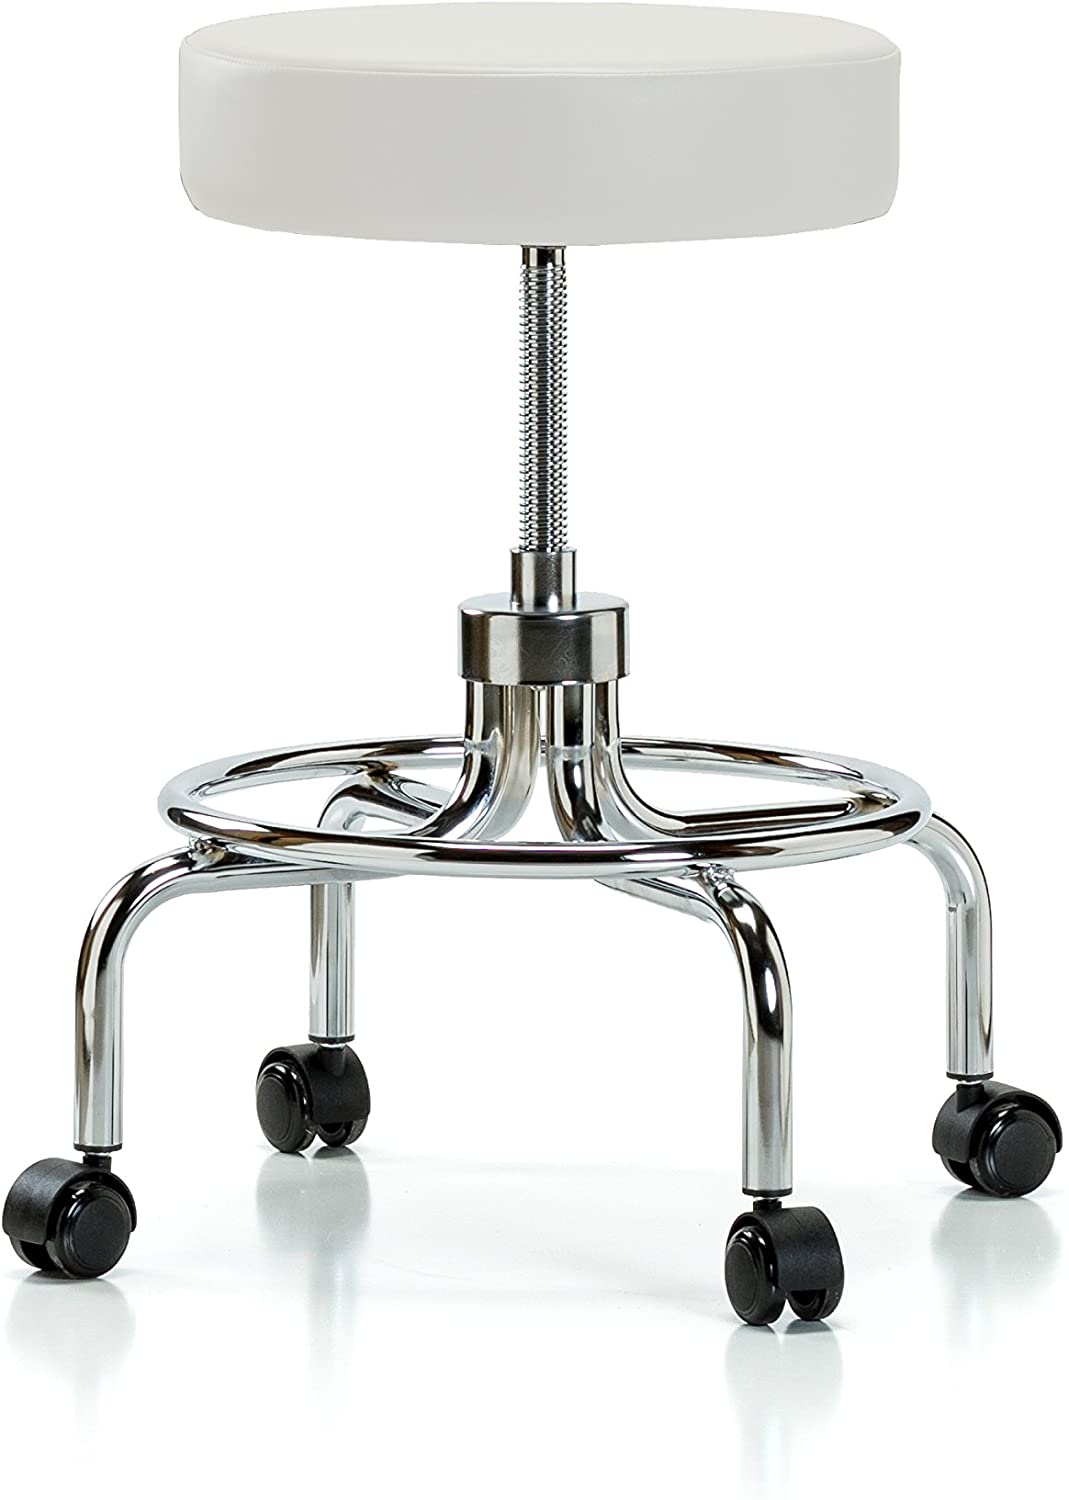 PERCH Chairs & Stools PERCH Rolling Retro Exam Stool with Wheels for Hardwood or Tile Floors, Adobe White Vinyl